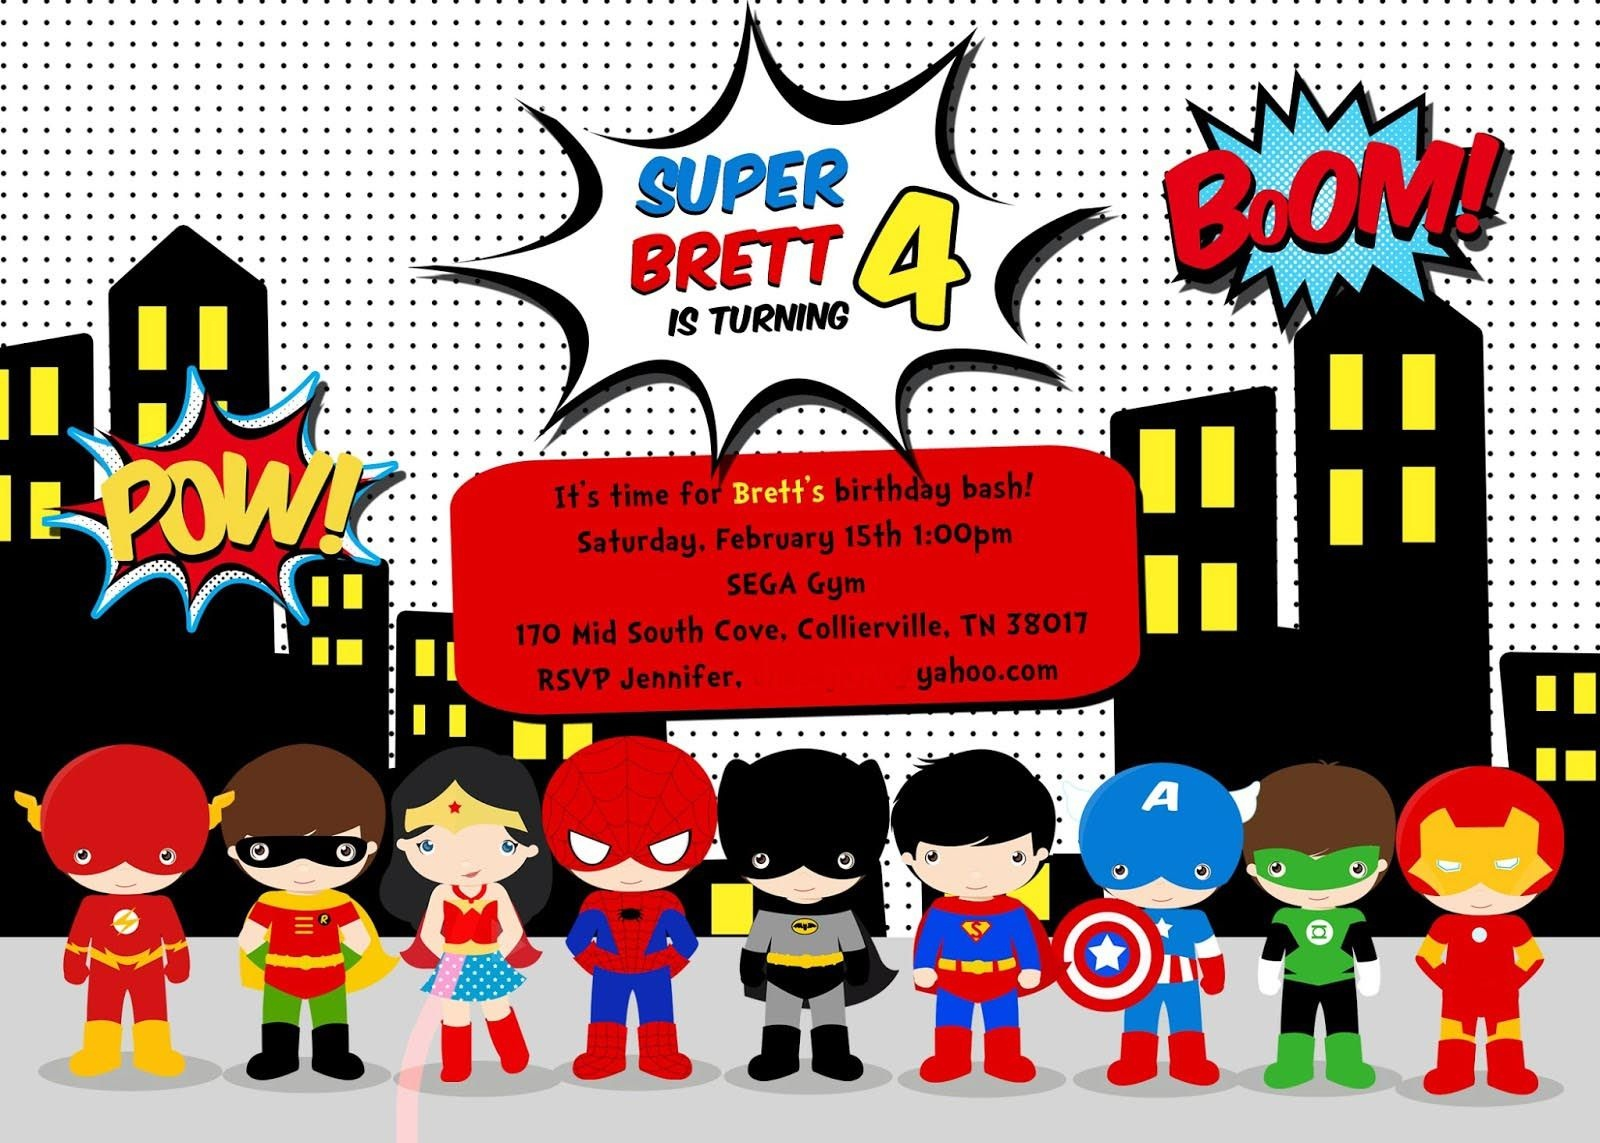 Free Superhero Birthday Party Invitation Templates | Birthday Party - Free Printable Superhero Birthday Invitation Templates